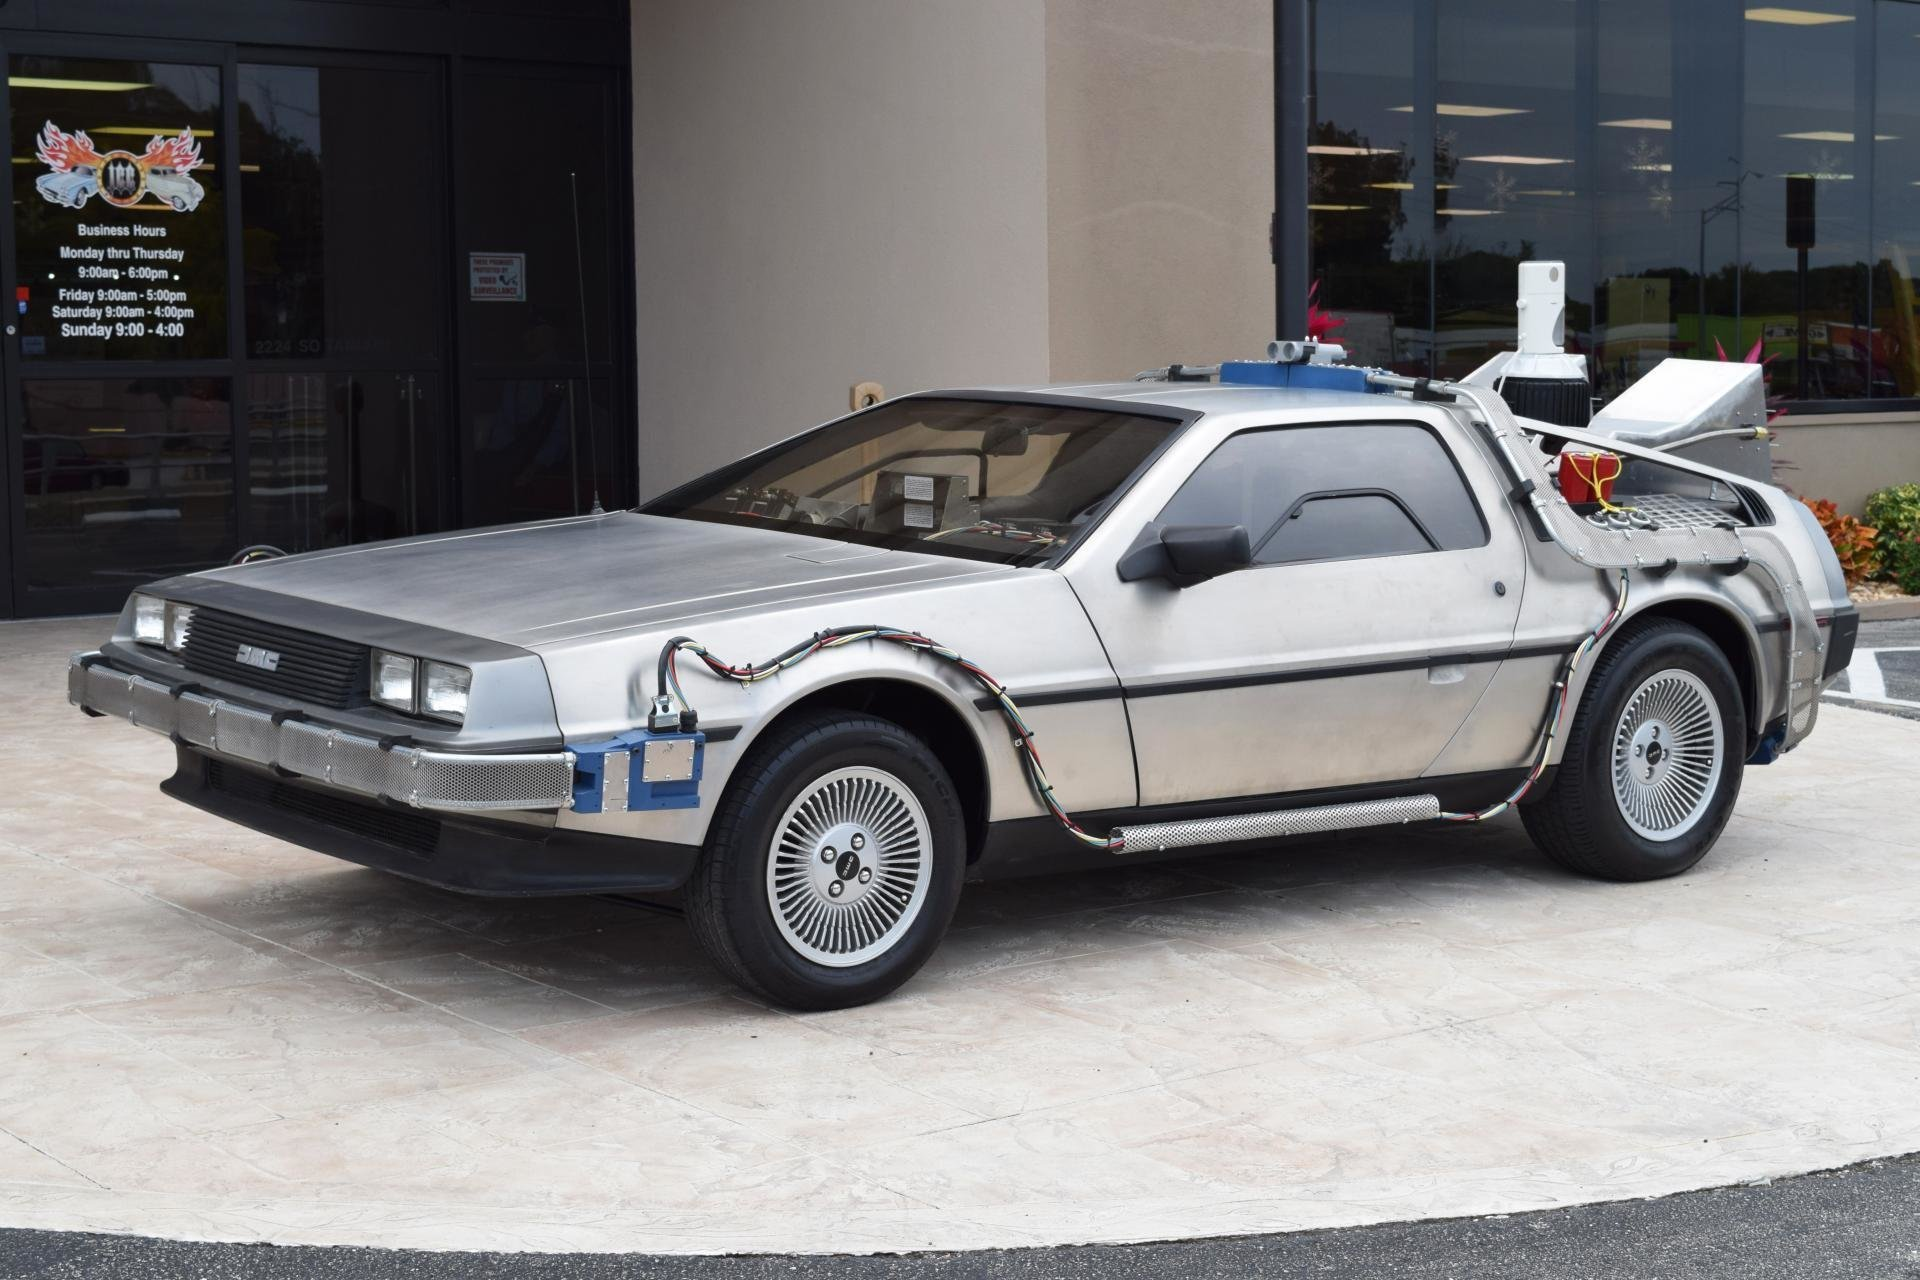 Z Movie Car Back To The Future DMC Ideal Classic Cars LLC - Car show venice florida